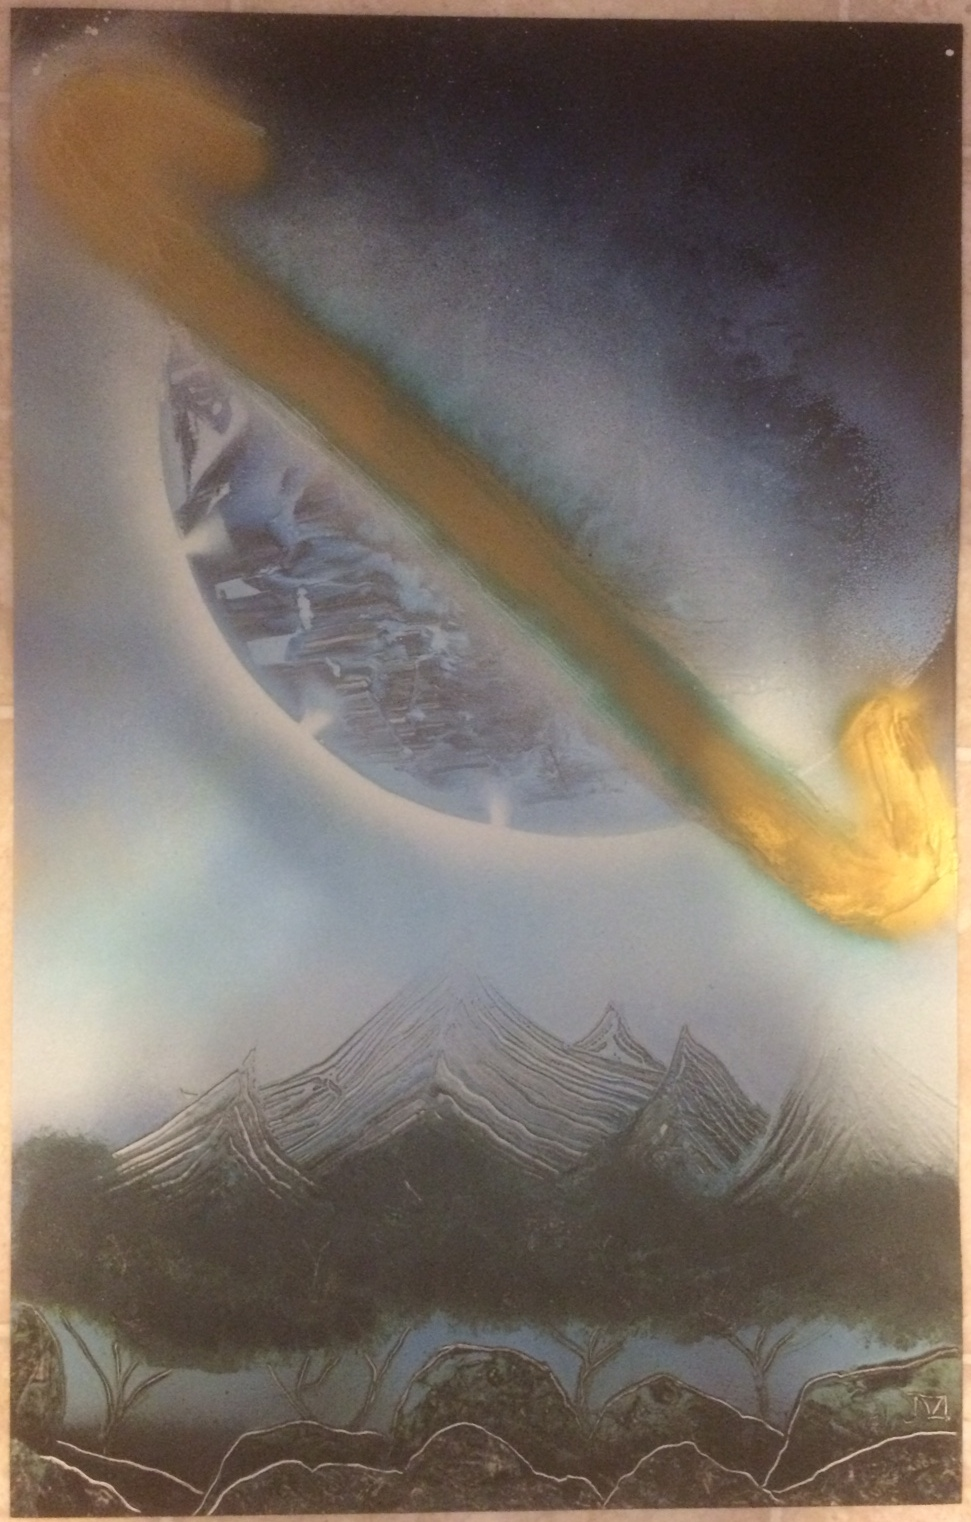 Spray paintings for sale online fantasy spray paint art for Art for sale on line